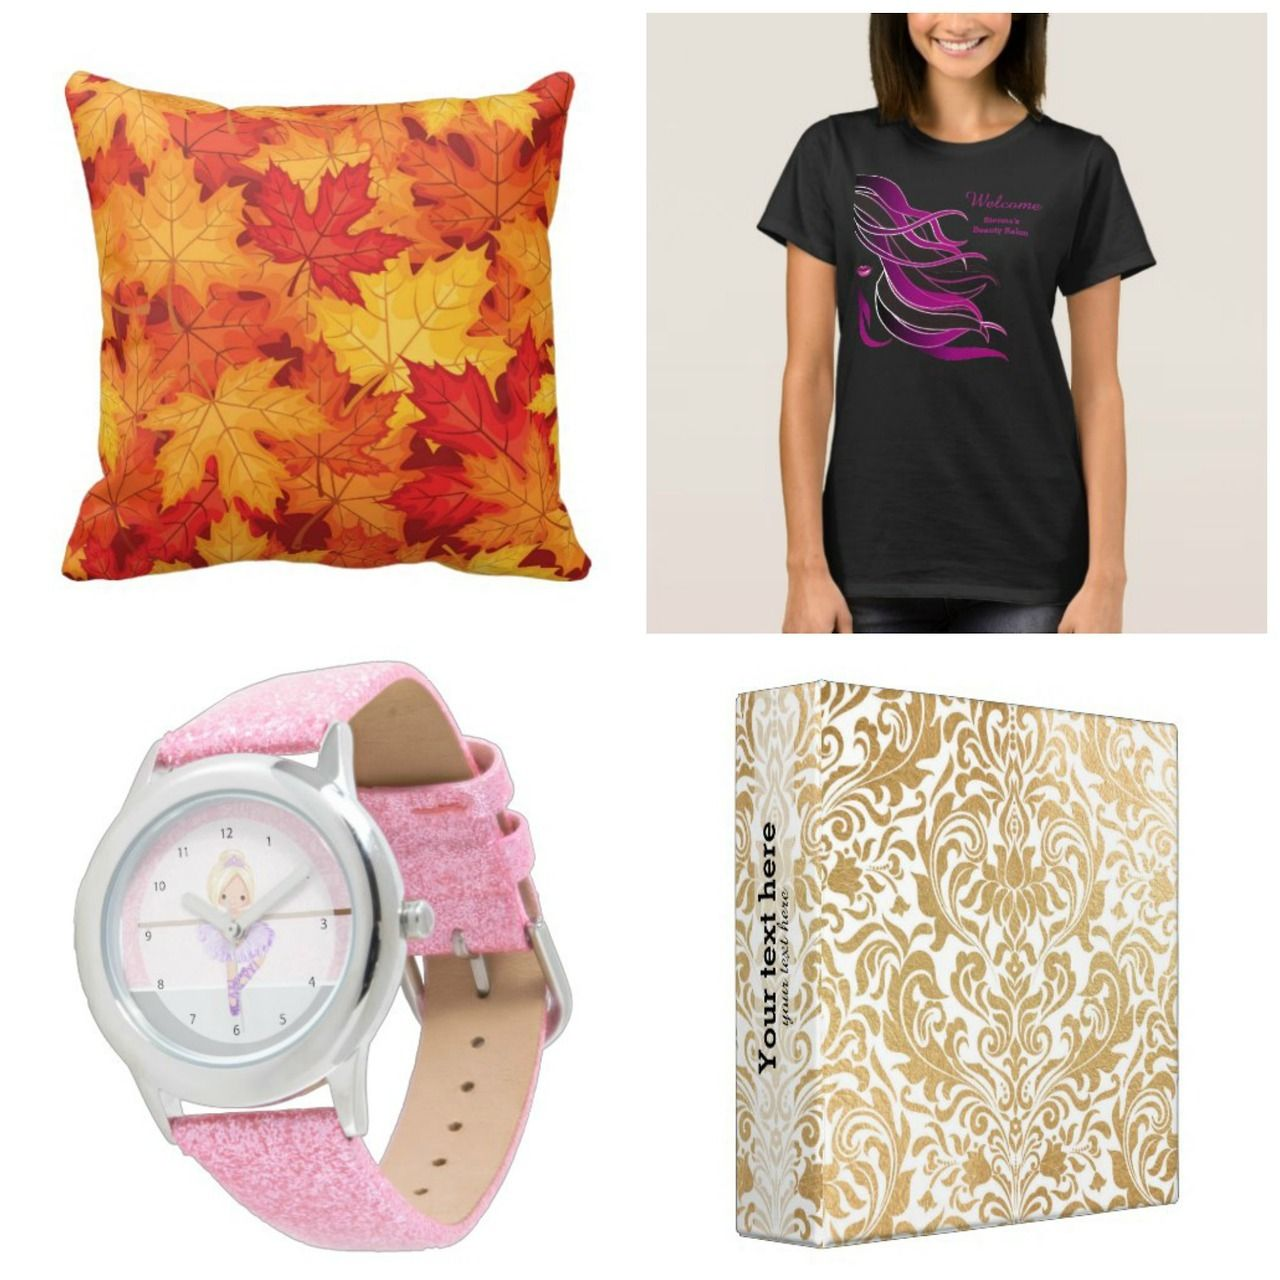 Ends 9/4 #sale #deals 25% Off #sitewide I Do Have Lots Of